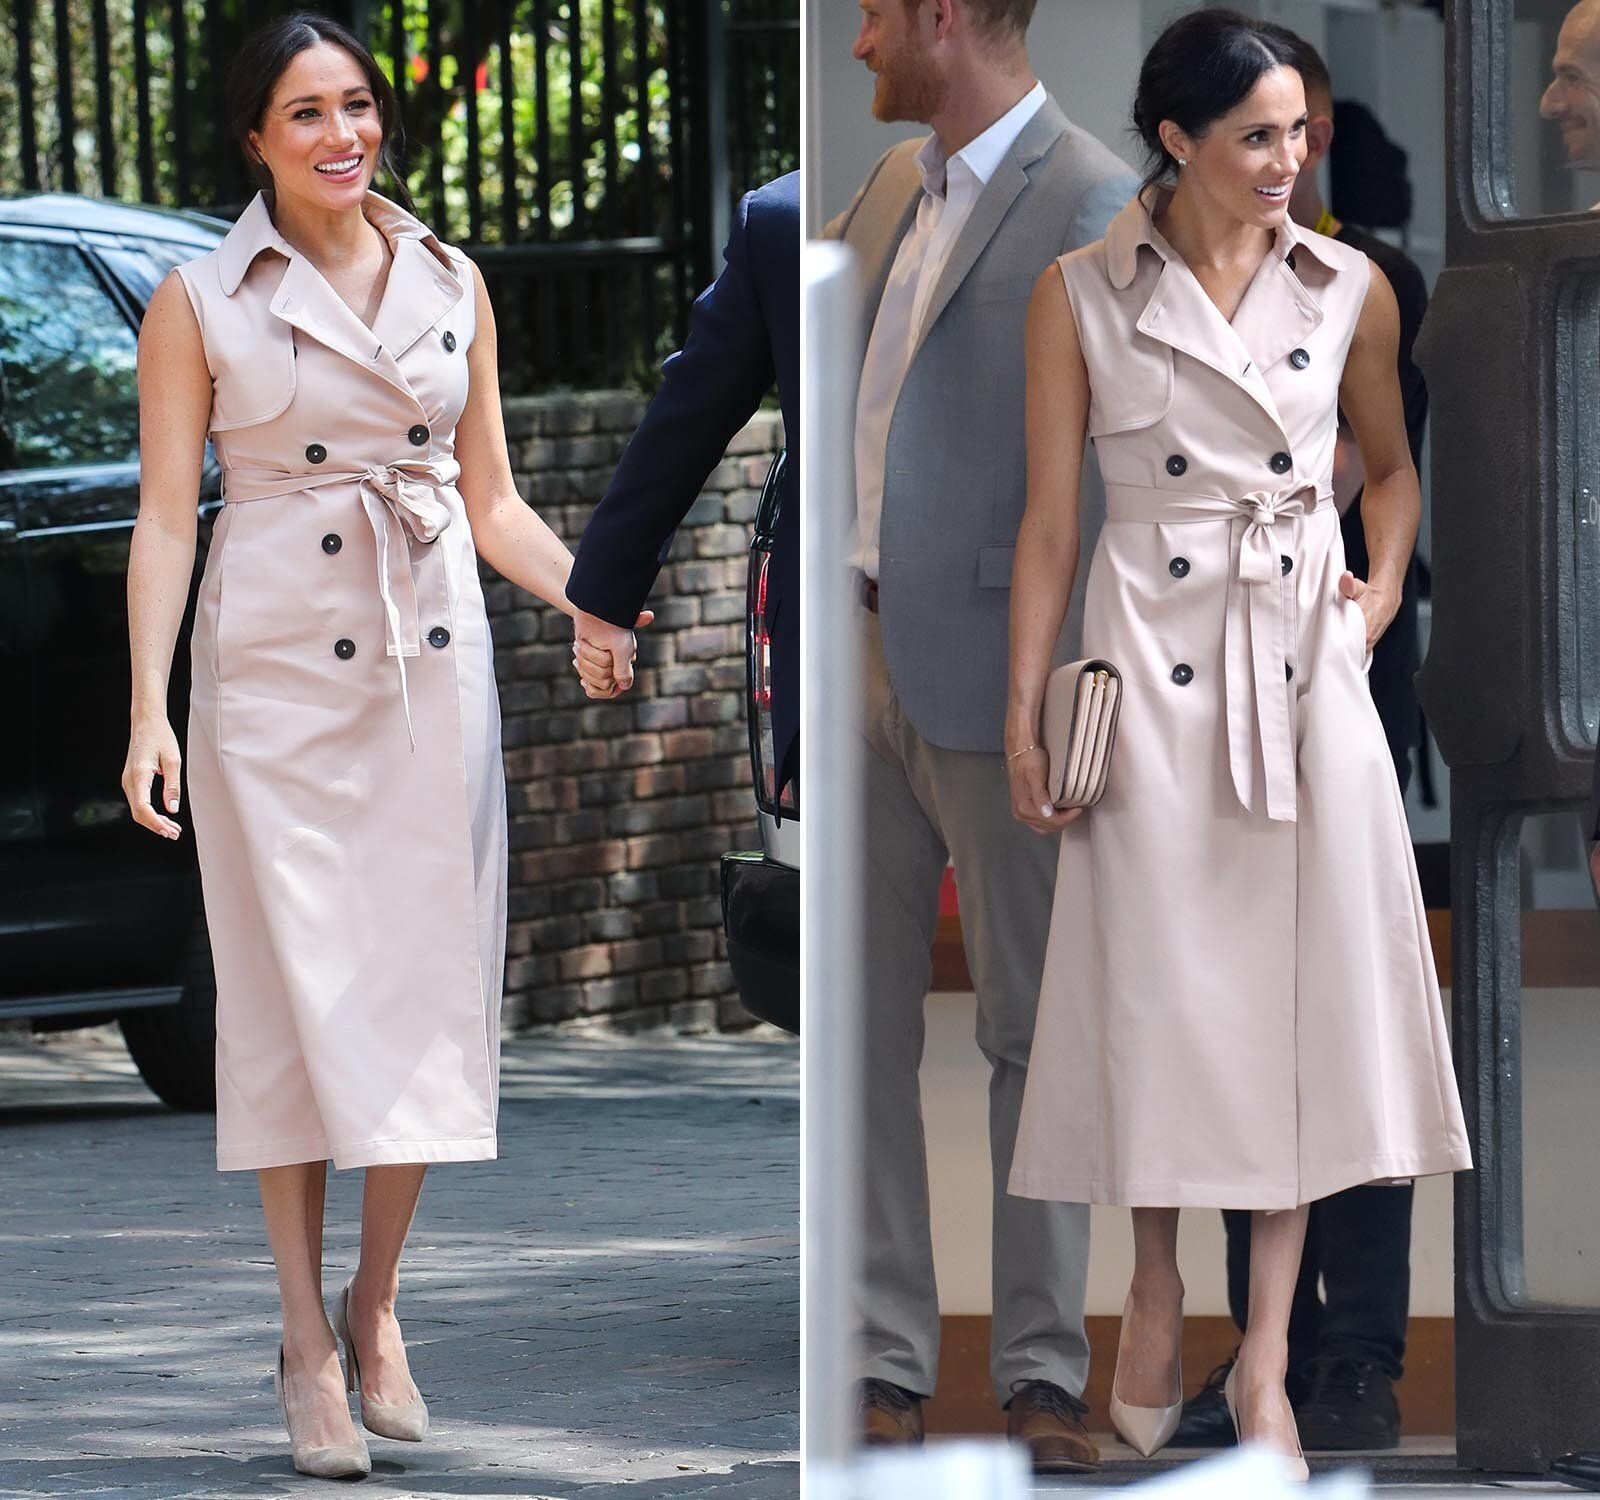 (Left) The Duchess of Sussex arrives to meet Graça Machel, widow of the late Nelson Mandela, on Oct. 2, 2019, in